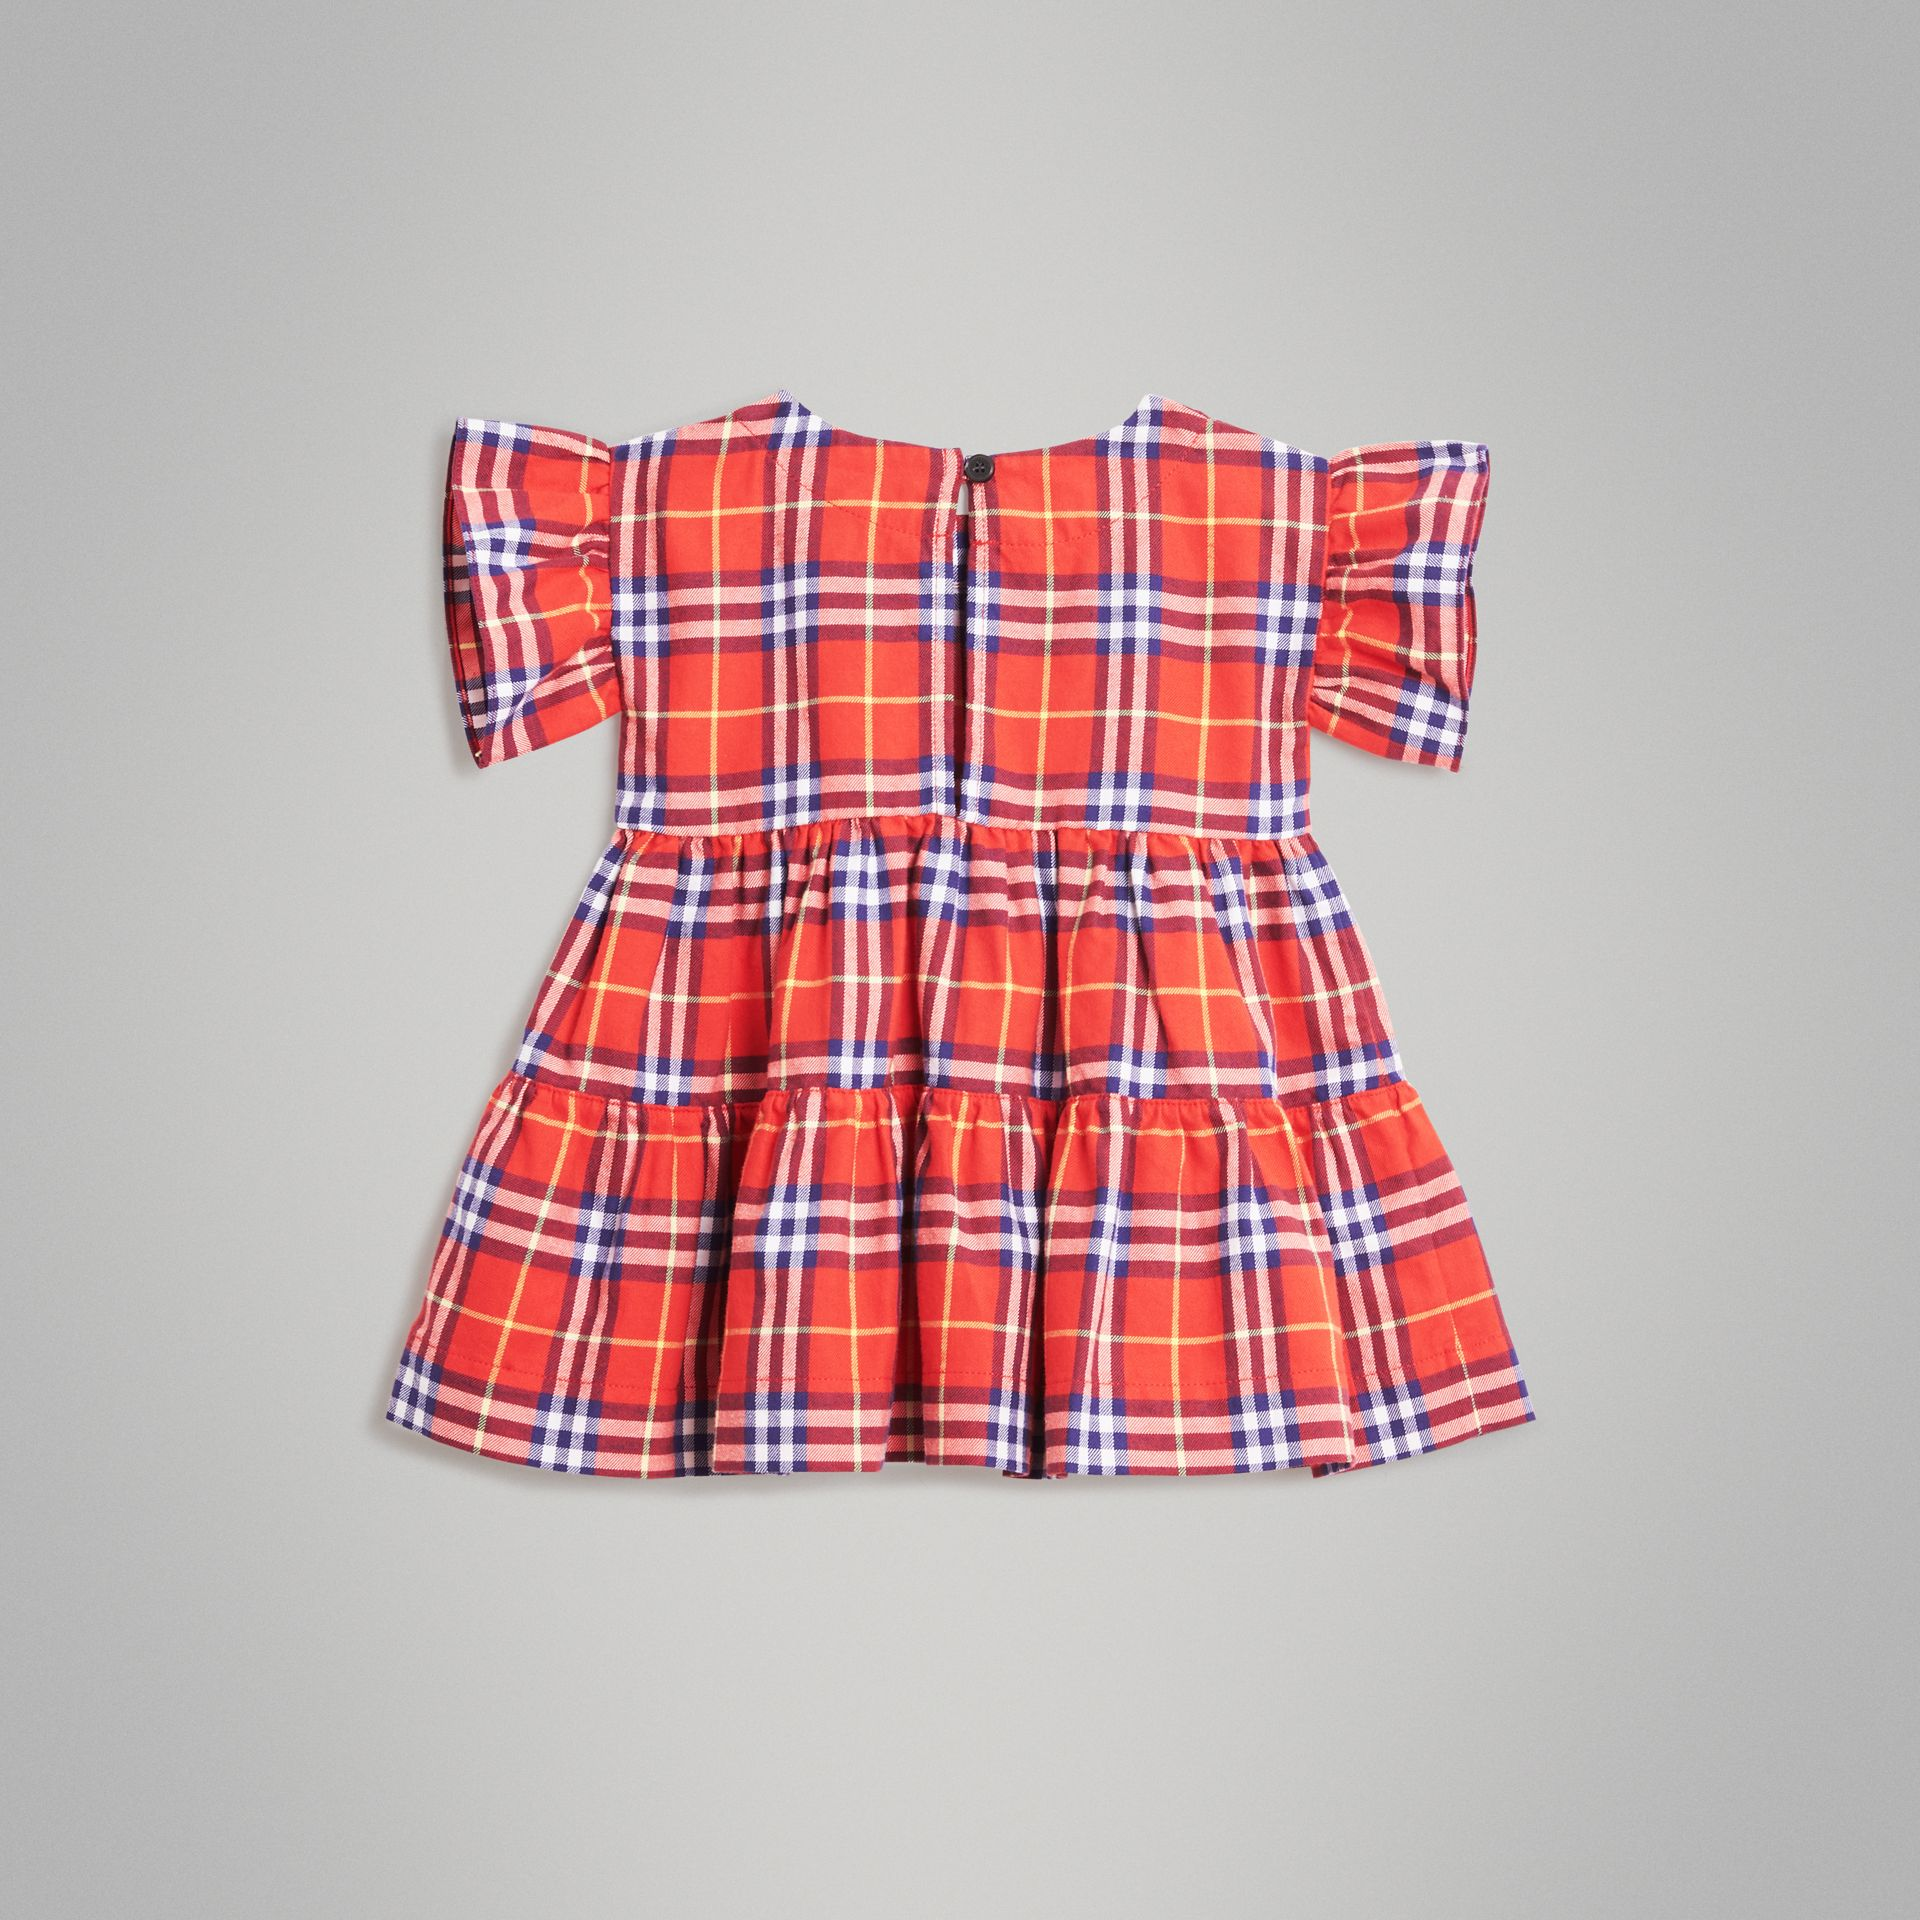 Ruffle Detail Cotton Check Dress in Orange Red - Children | Burberry Australia - gallery image 3